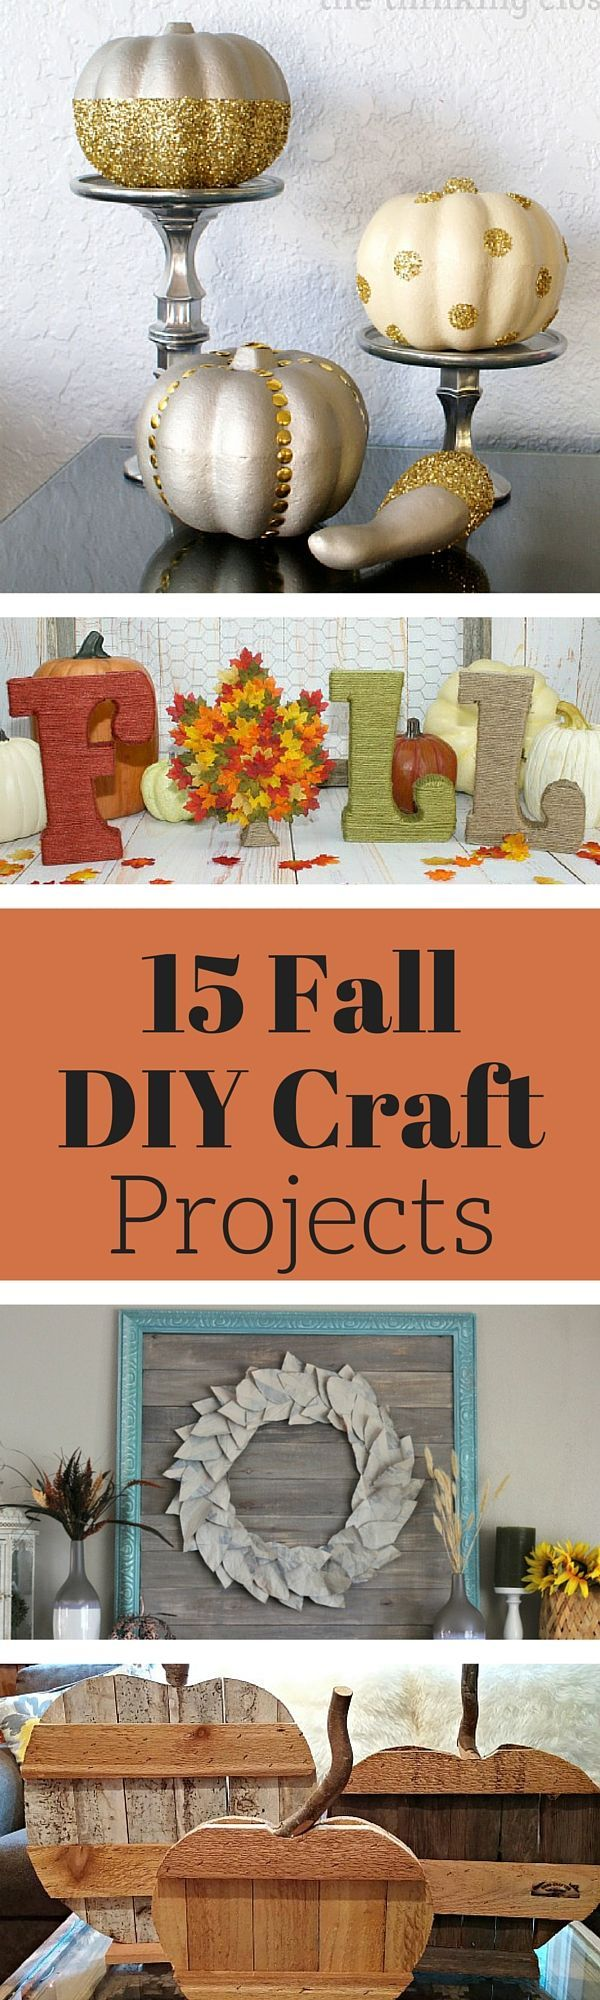 designer bags online 15 Fall DIY Craft Projects  Halloween Crafts to the perfect decor idea